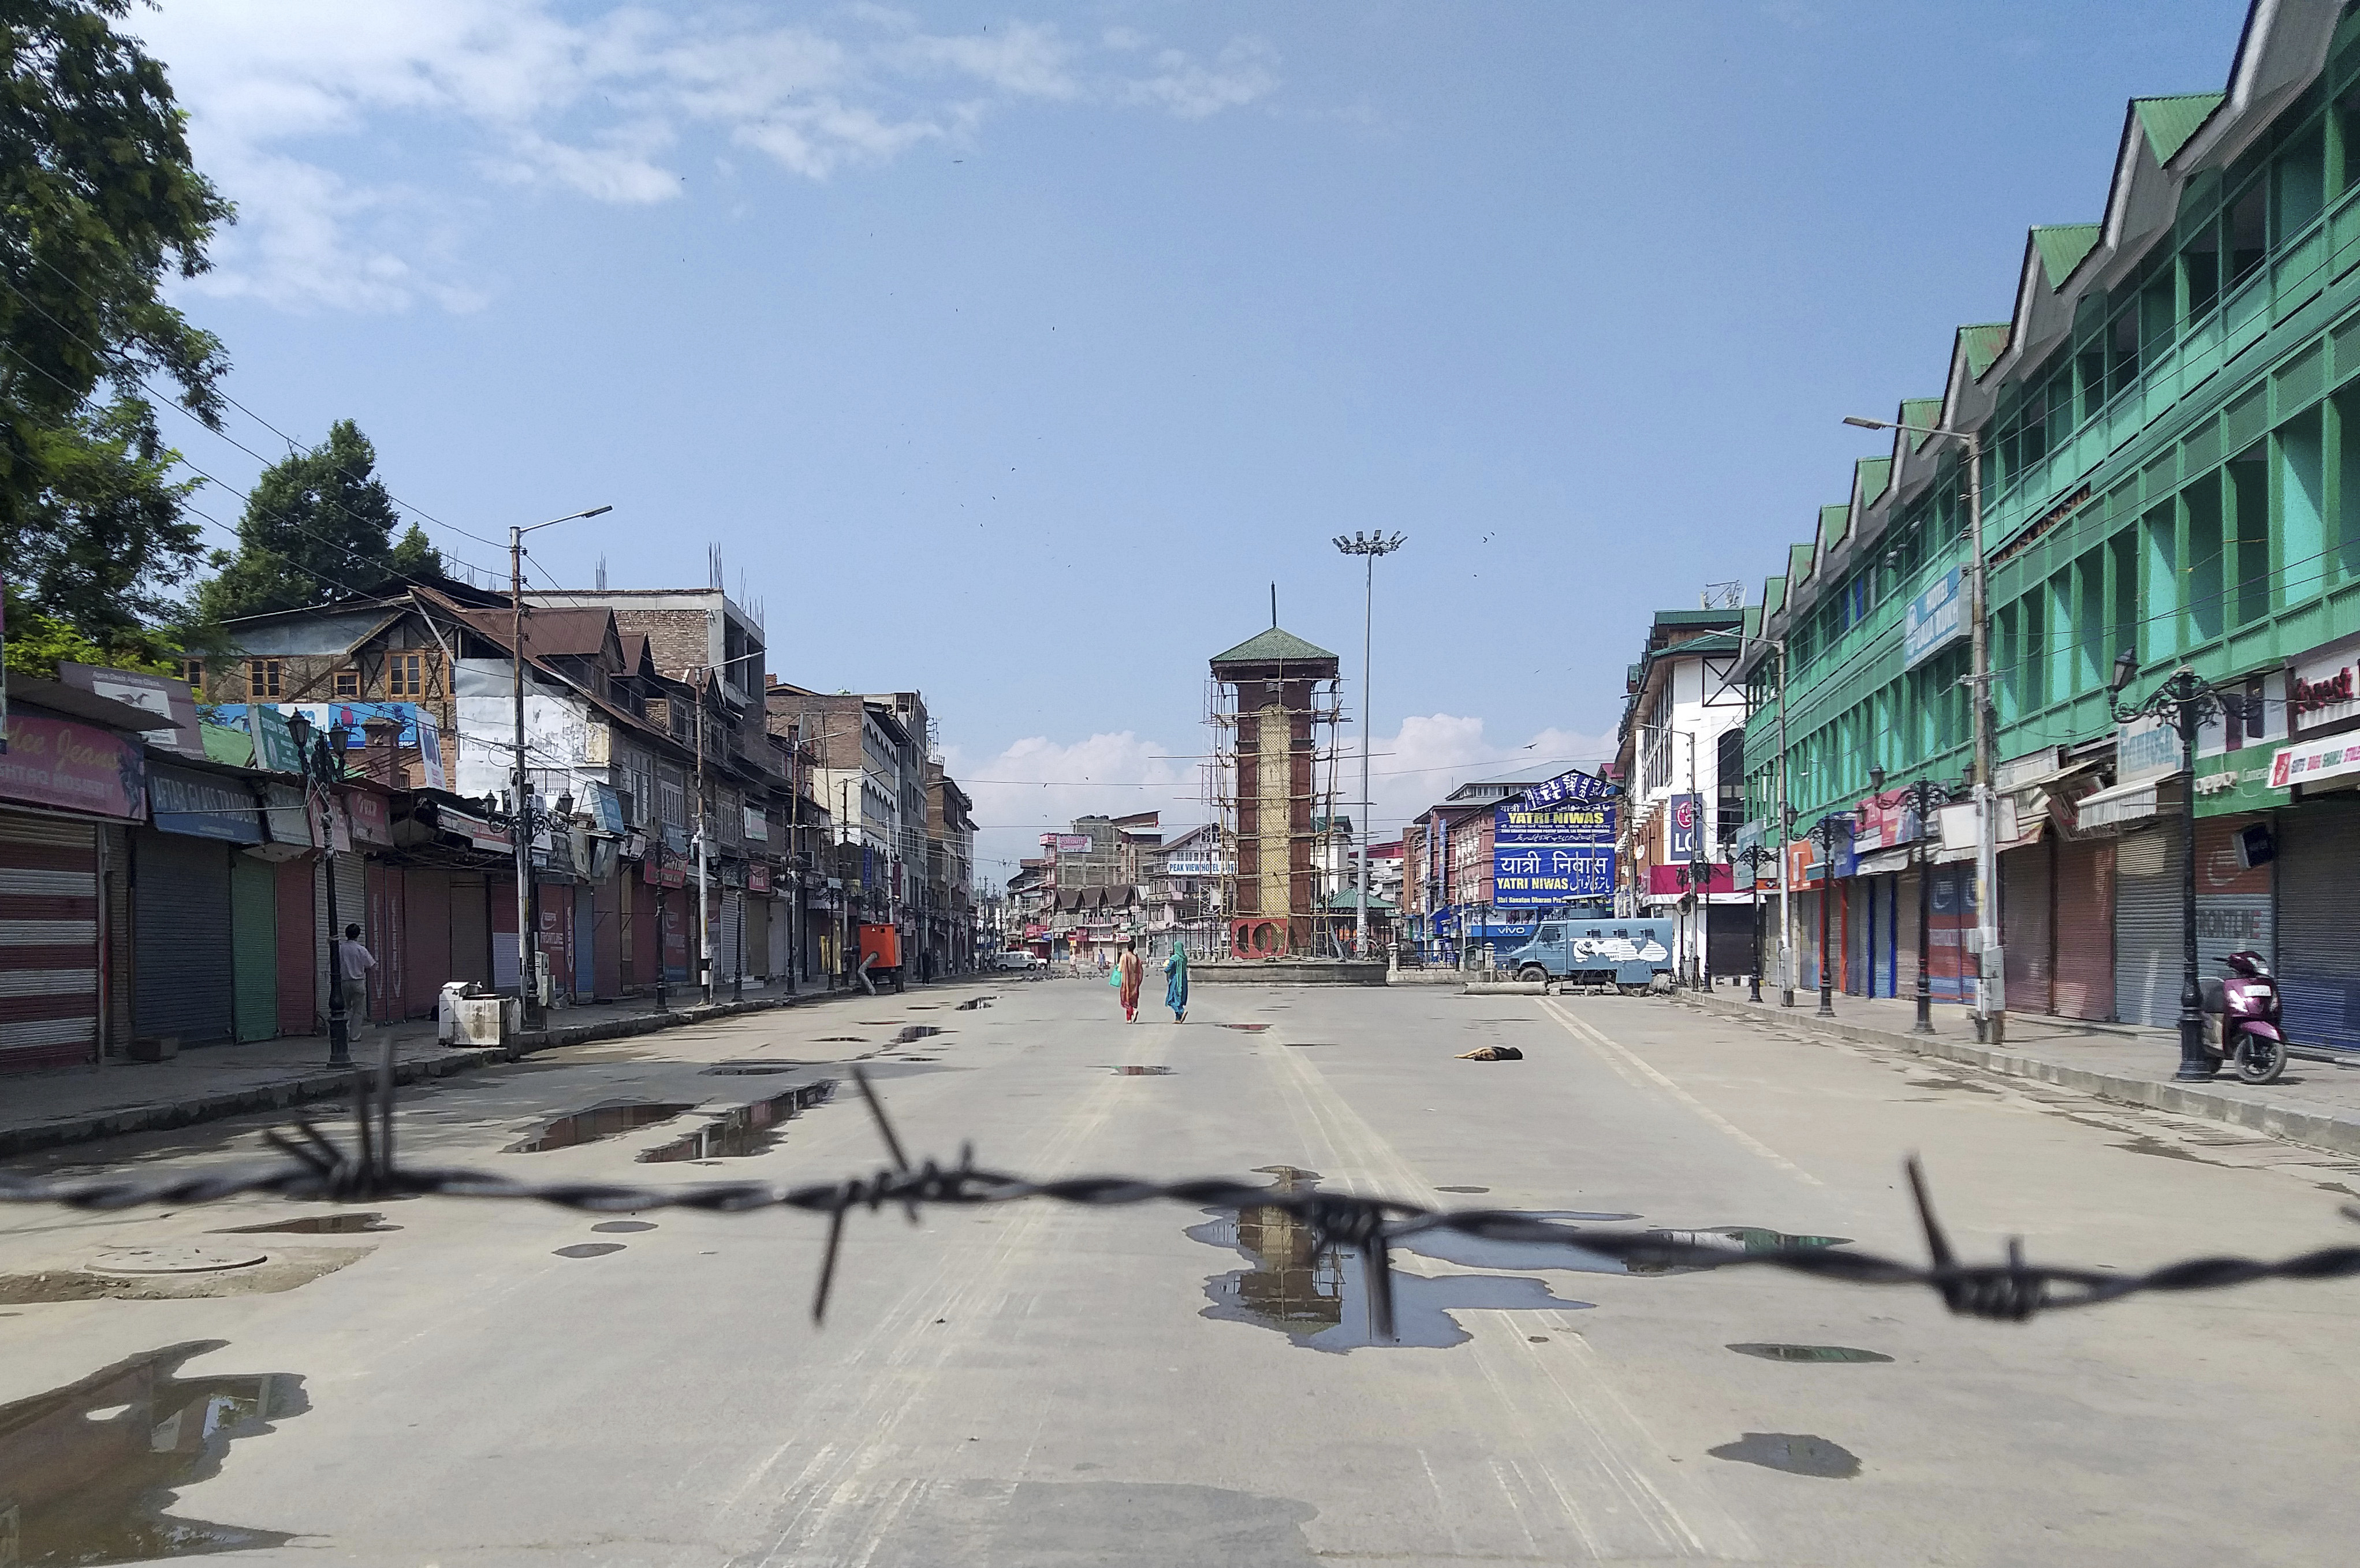 Kashmiri reporter finds fear, chaos in locked-down hometown